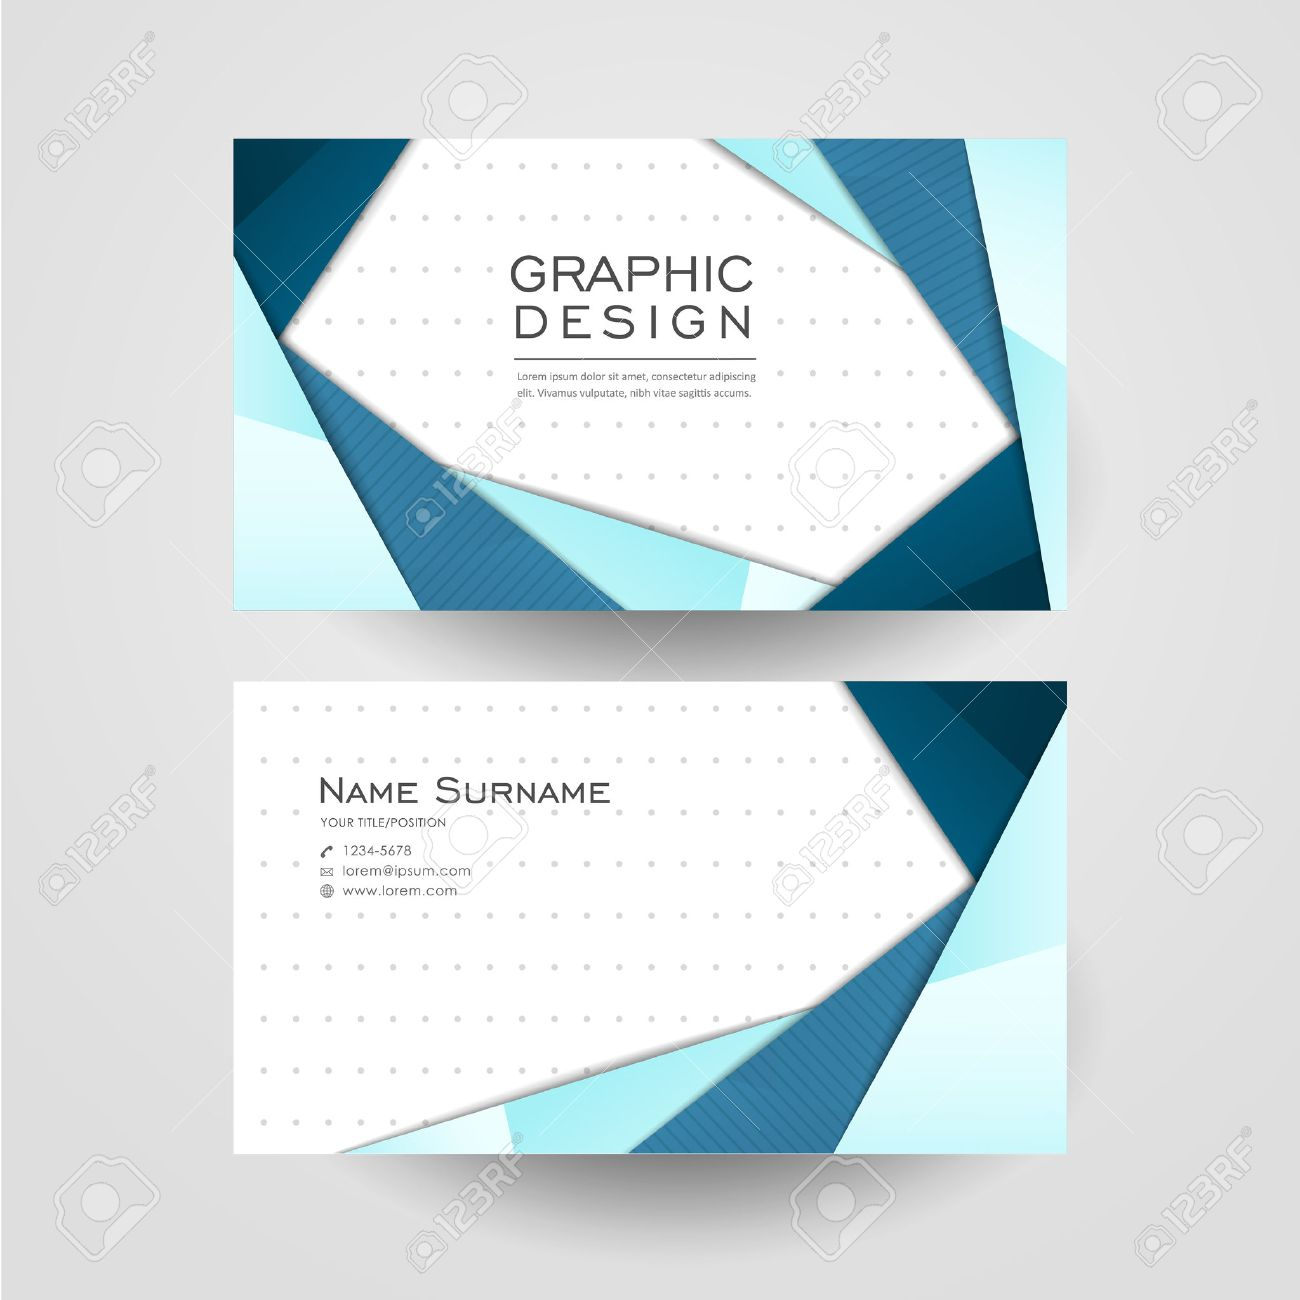 Modern origami style design for business card in blue royalty free modern origami style design for business card in blue stock vector 32856505 jeuxipadfo Gallery